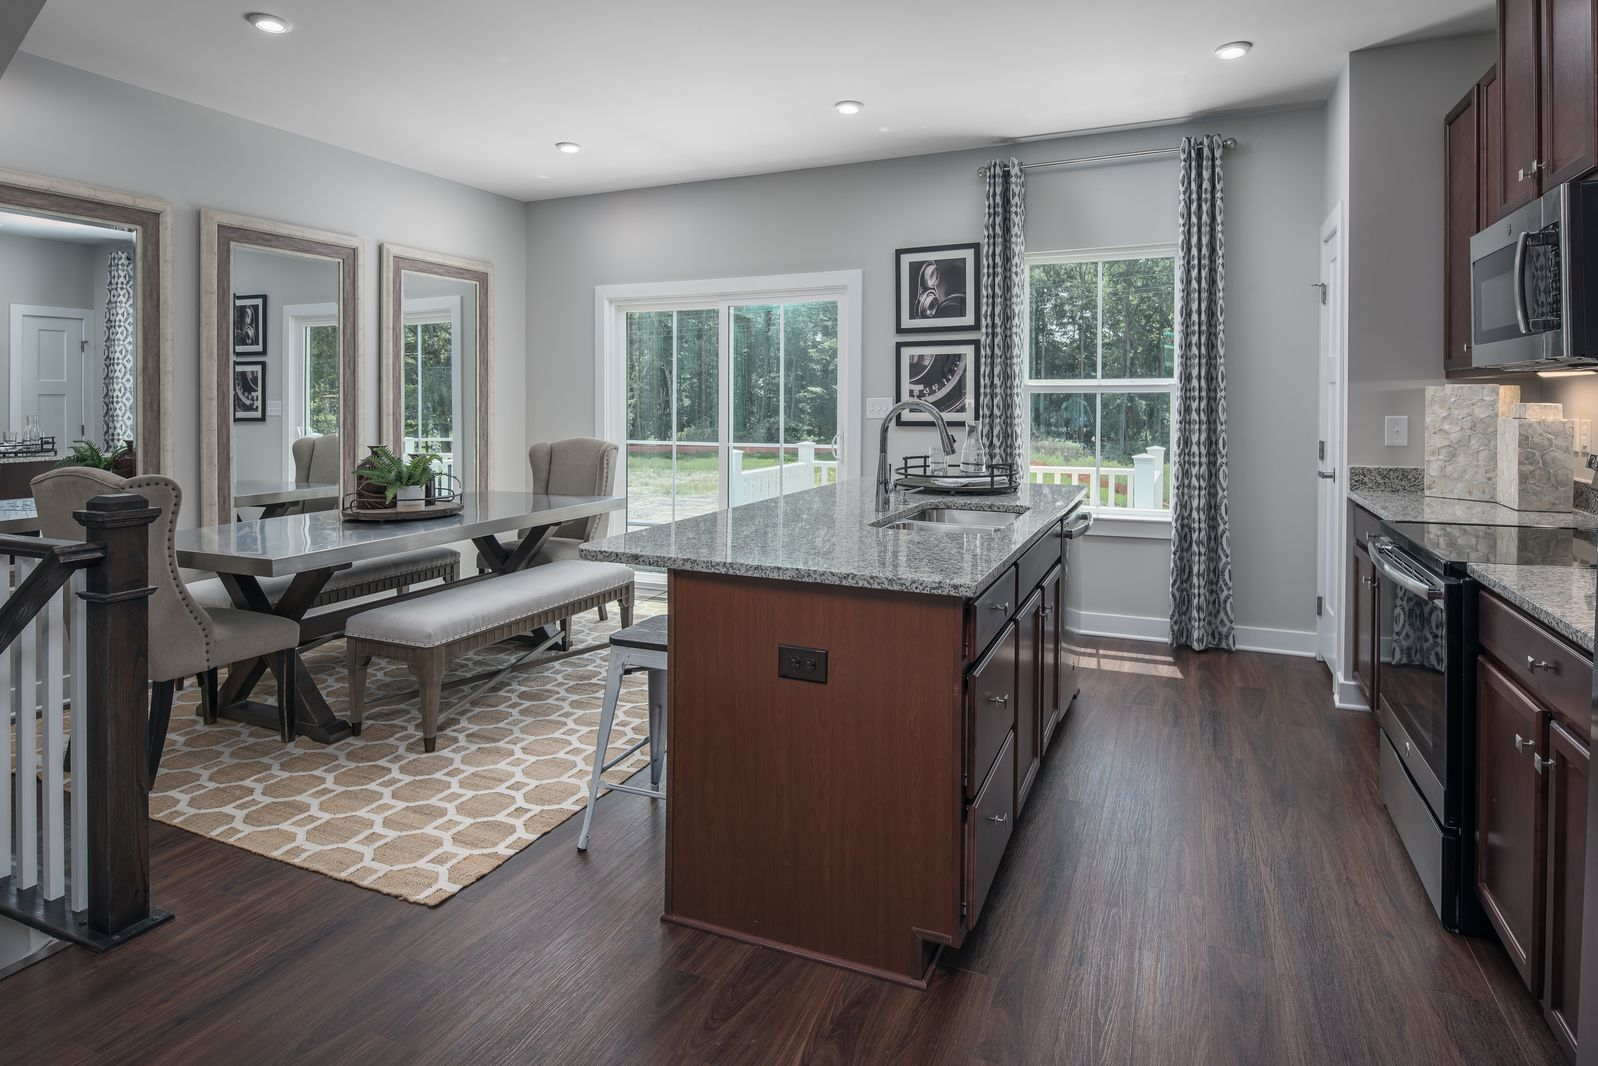 Kitchen-in-Beethoven-at-The Towns at Bryan's Cove-in-Chesapeake